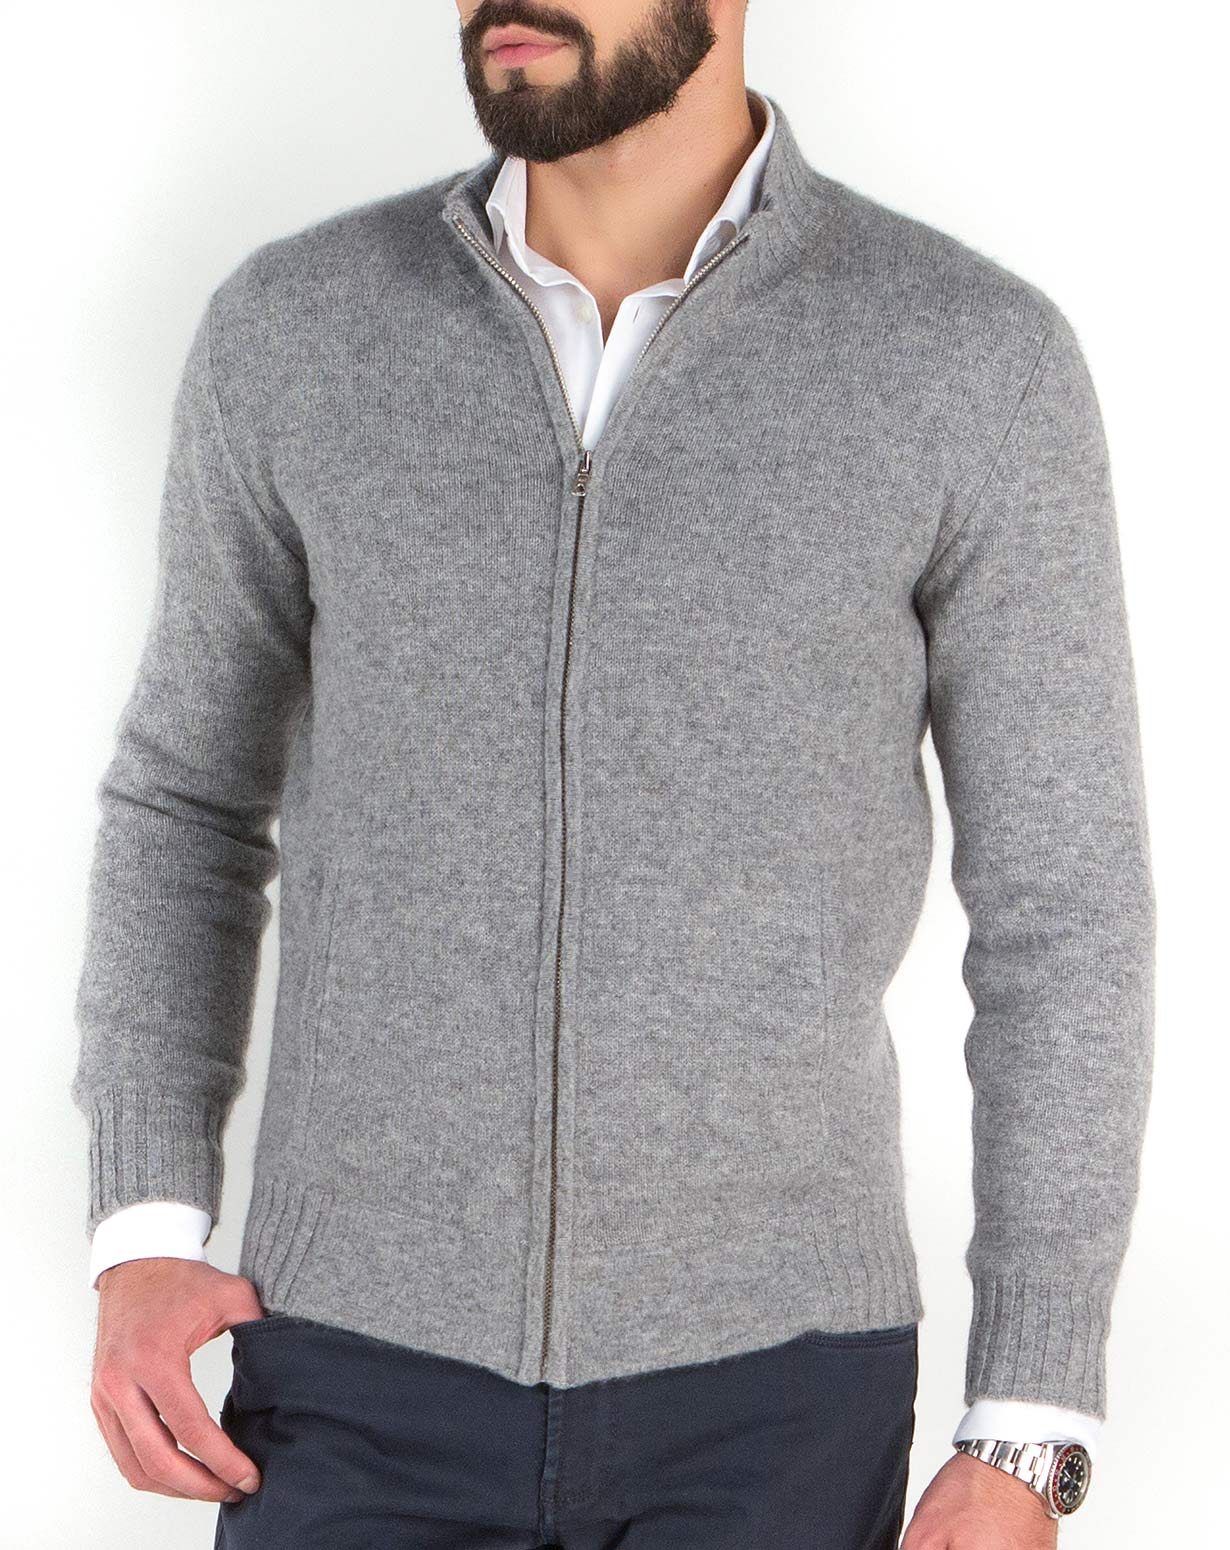 Men's Pure Cashmere Turtleneck Zip Cardigan